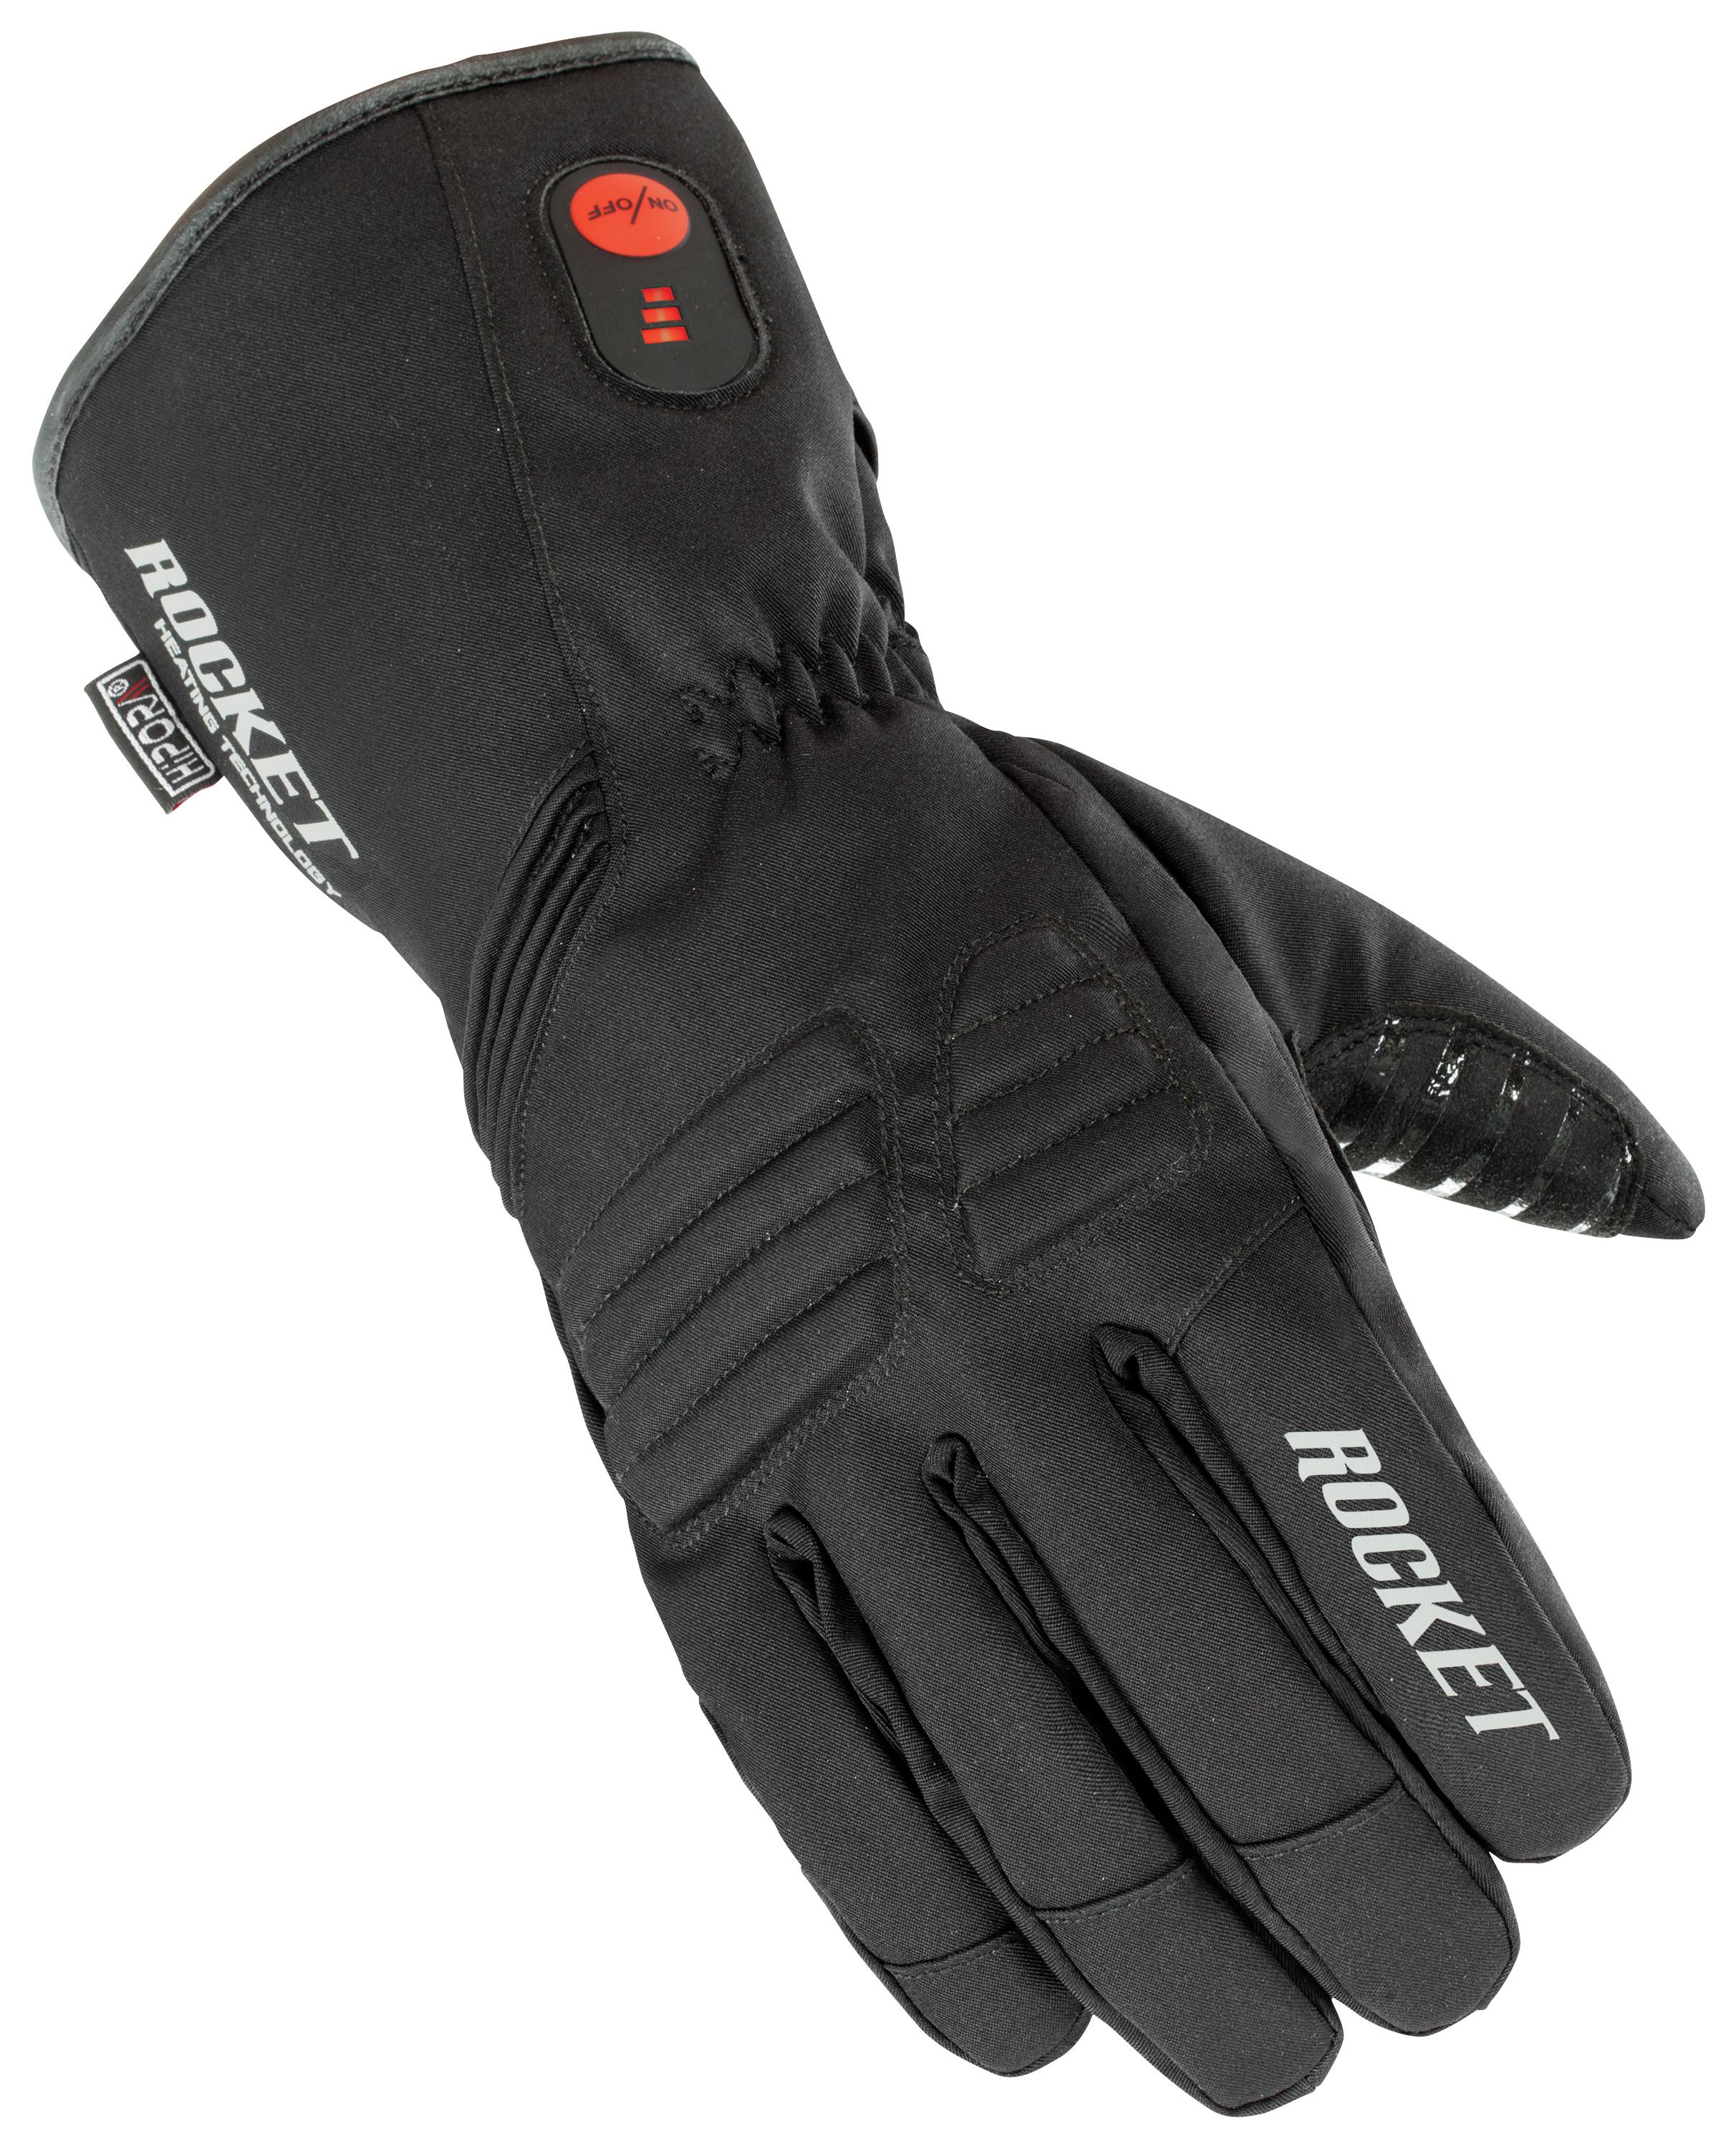 Motorcycle gloves heated battery -